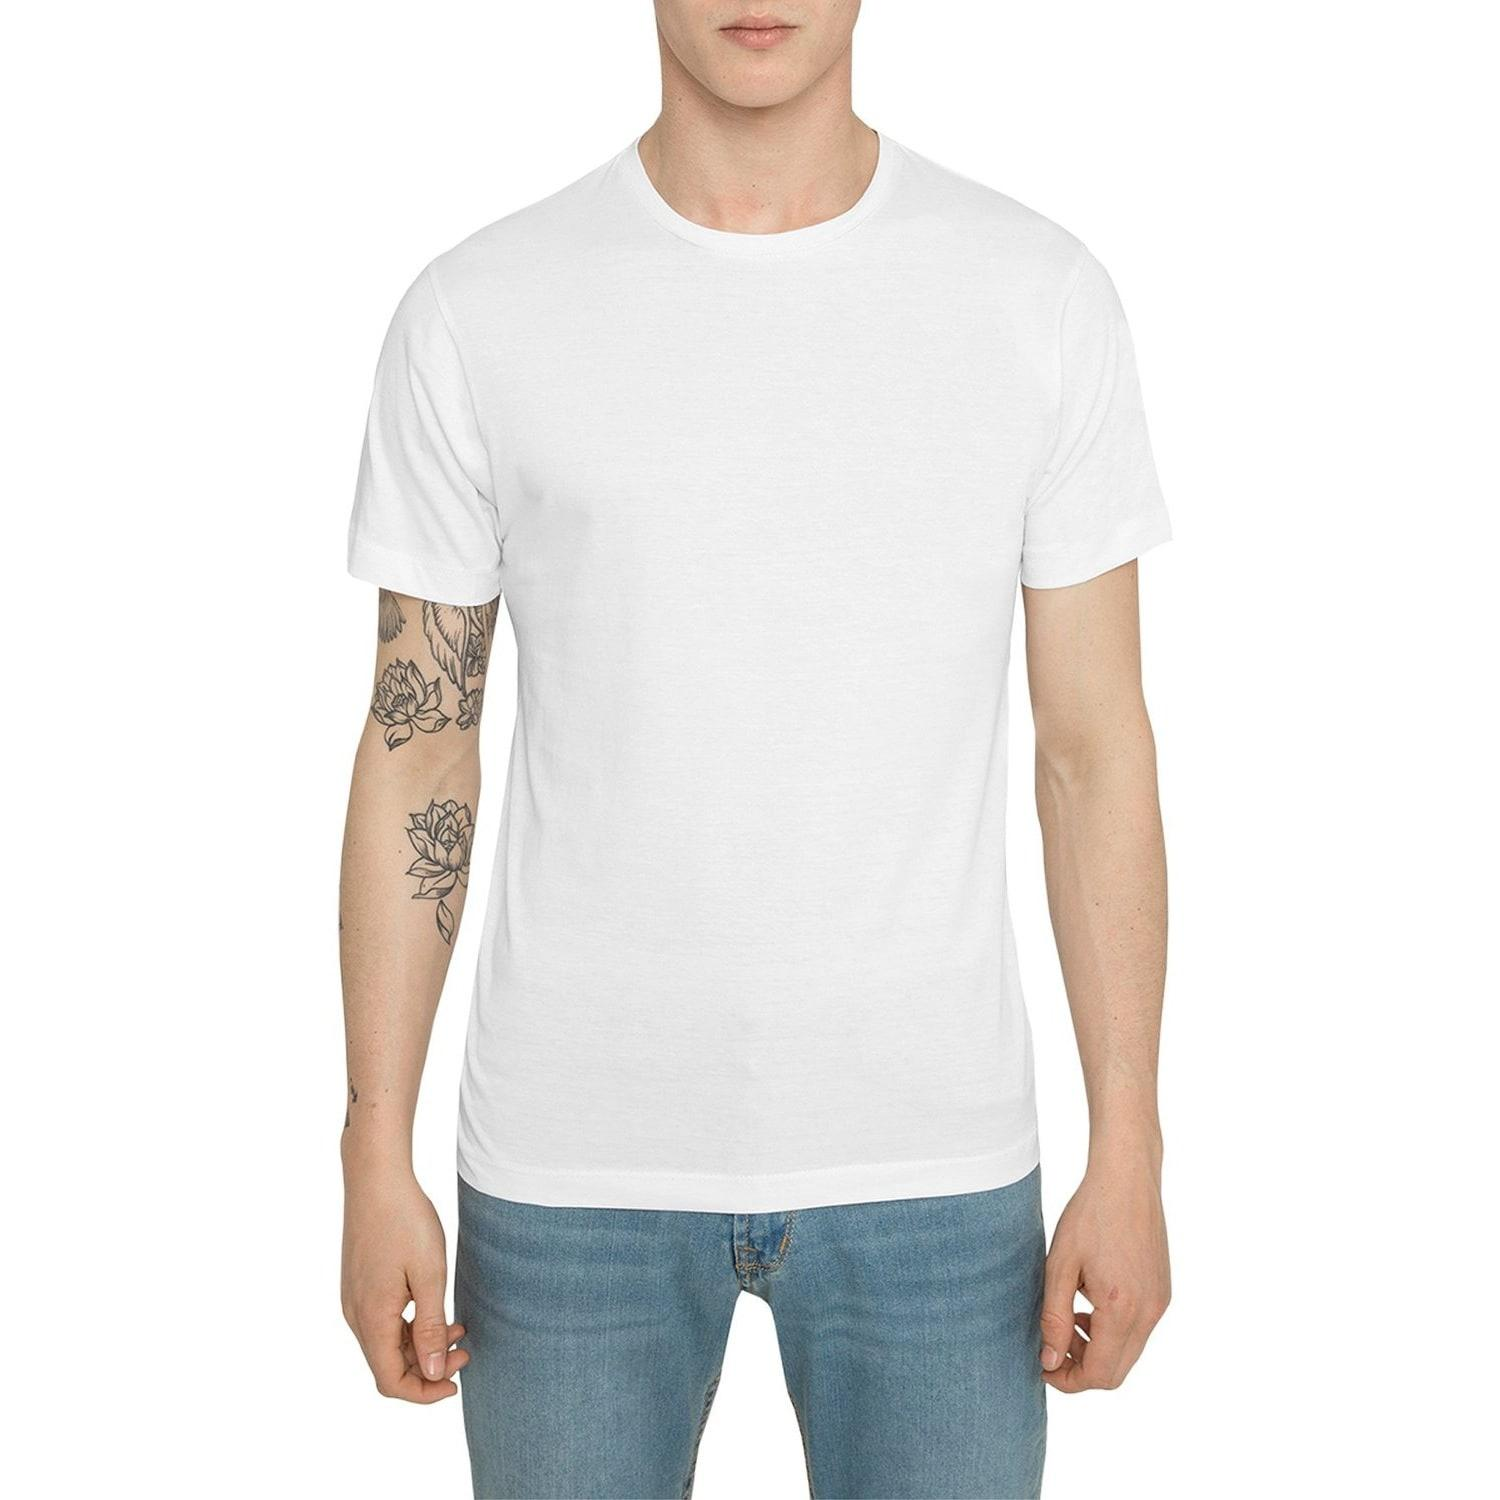 Raddar7 Casual Luxe Sport Plain White Crew T-shirt in ...